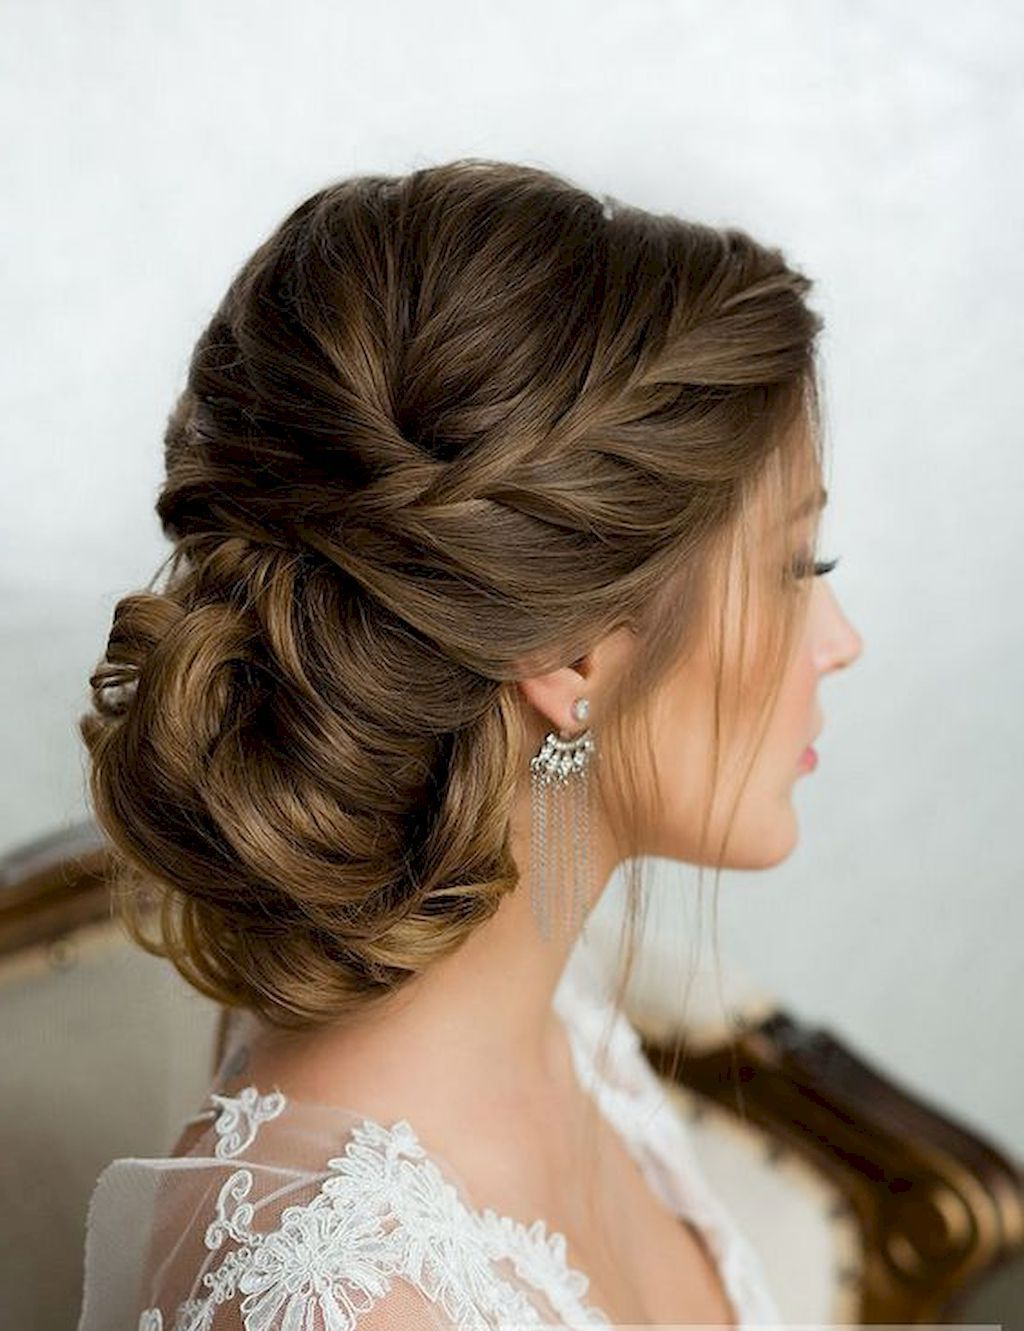 23 Bridal Wedding Hairstyles For Long Hair That Will Inspire (Gallery 18 of 20)